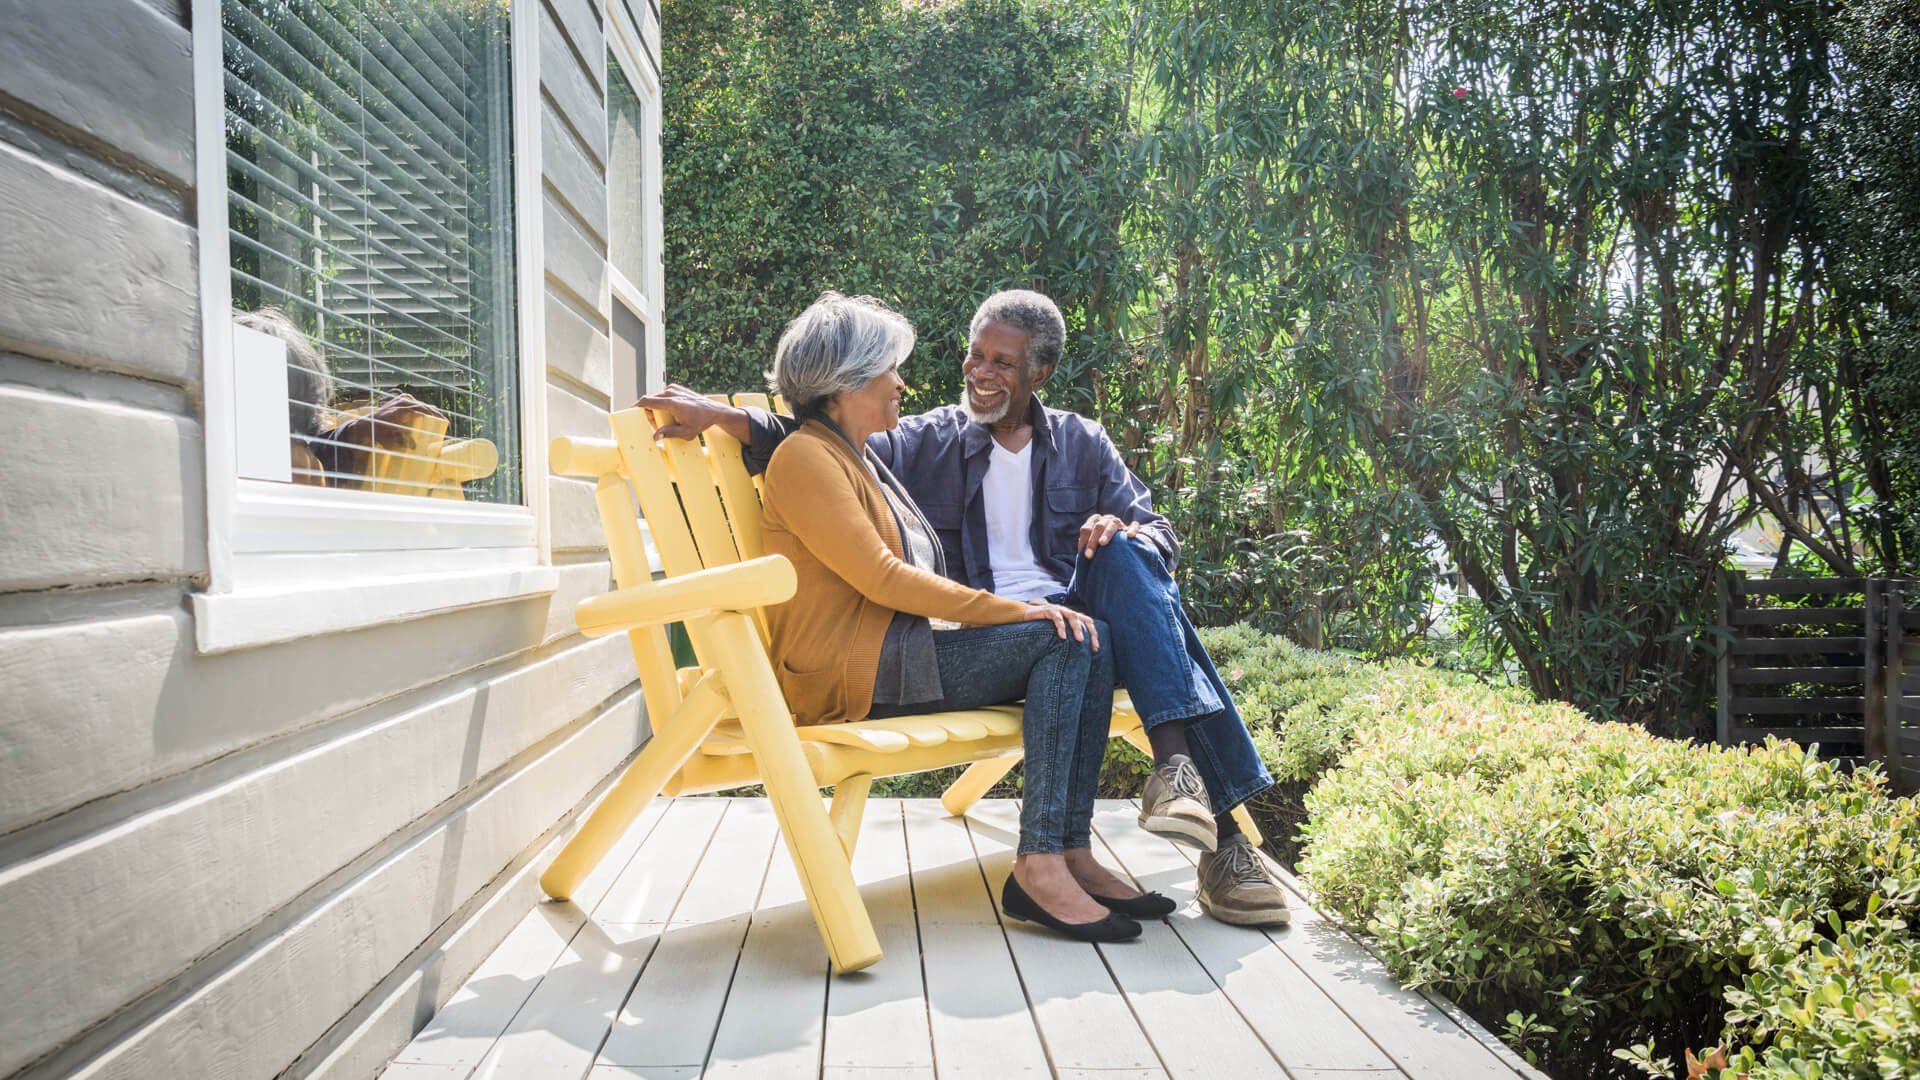 Surprising Ways Retirees Are Earning Extra Money